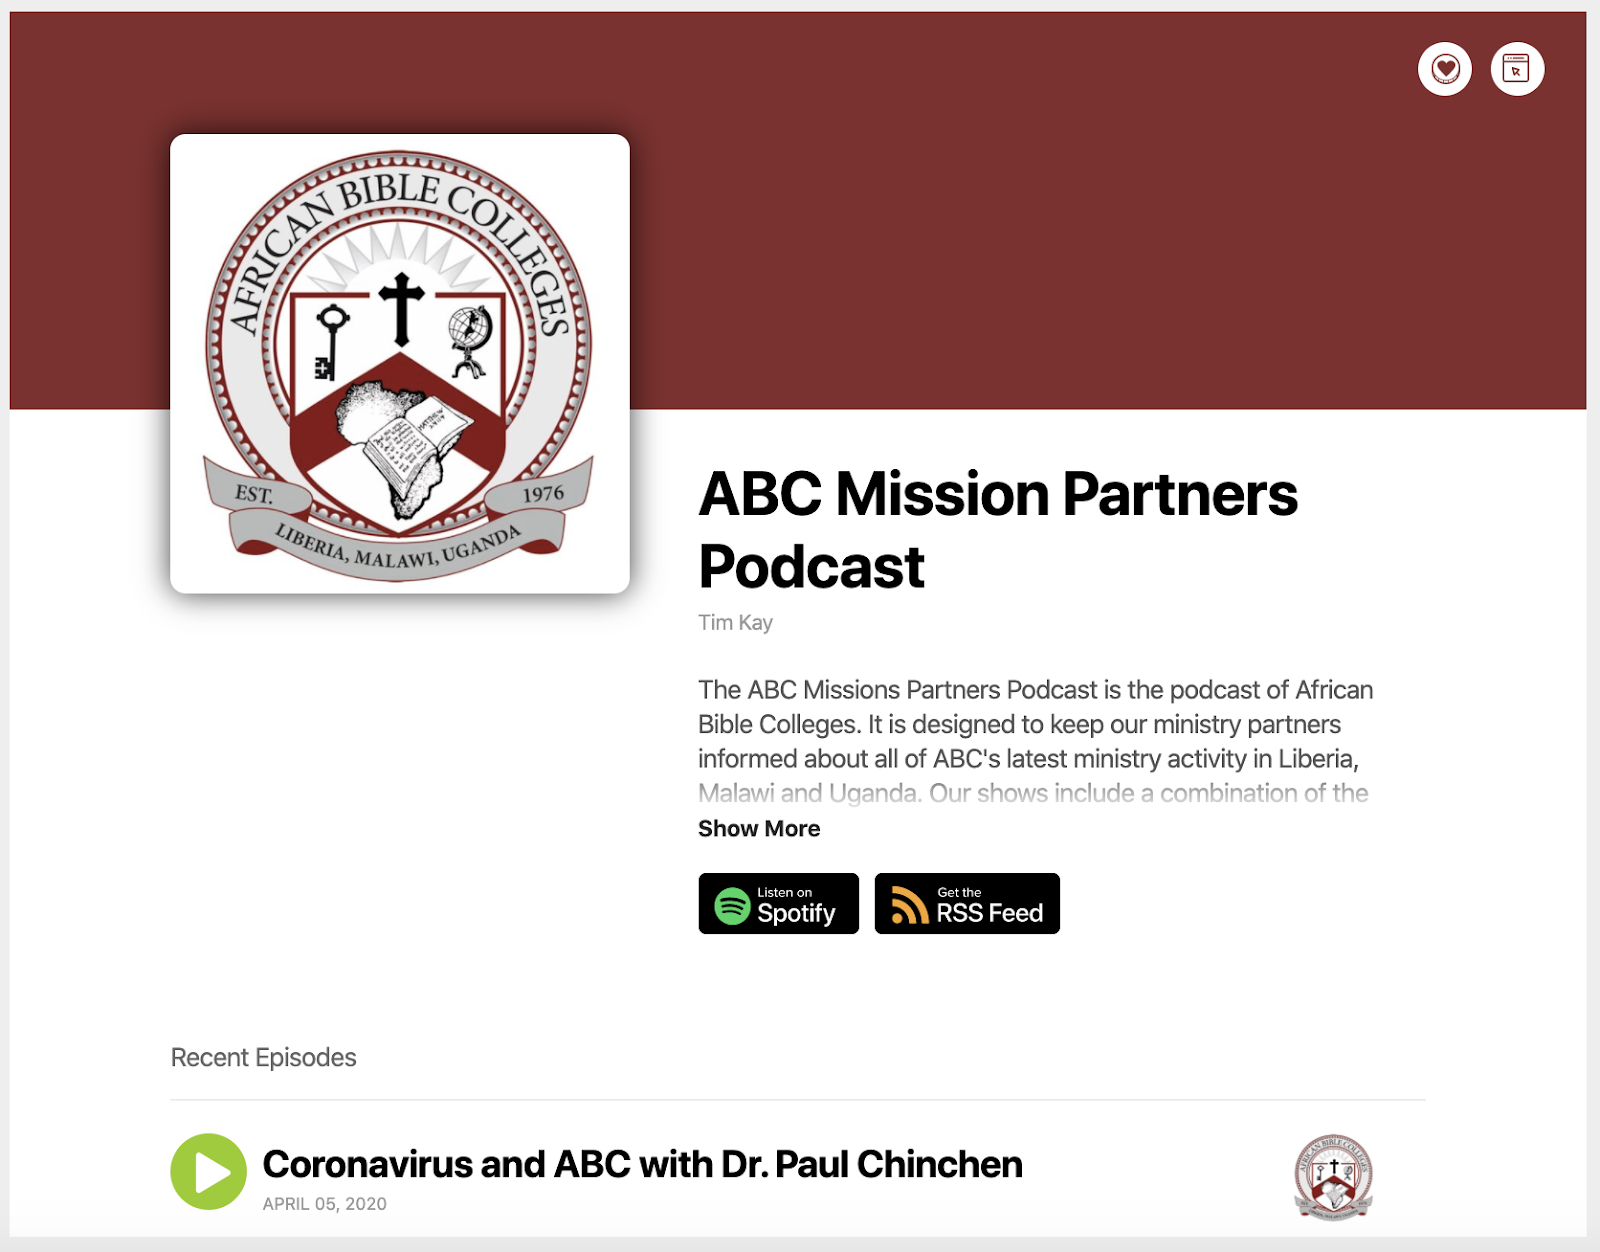 ABC Mission Partners Podcast